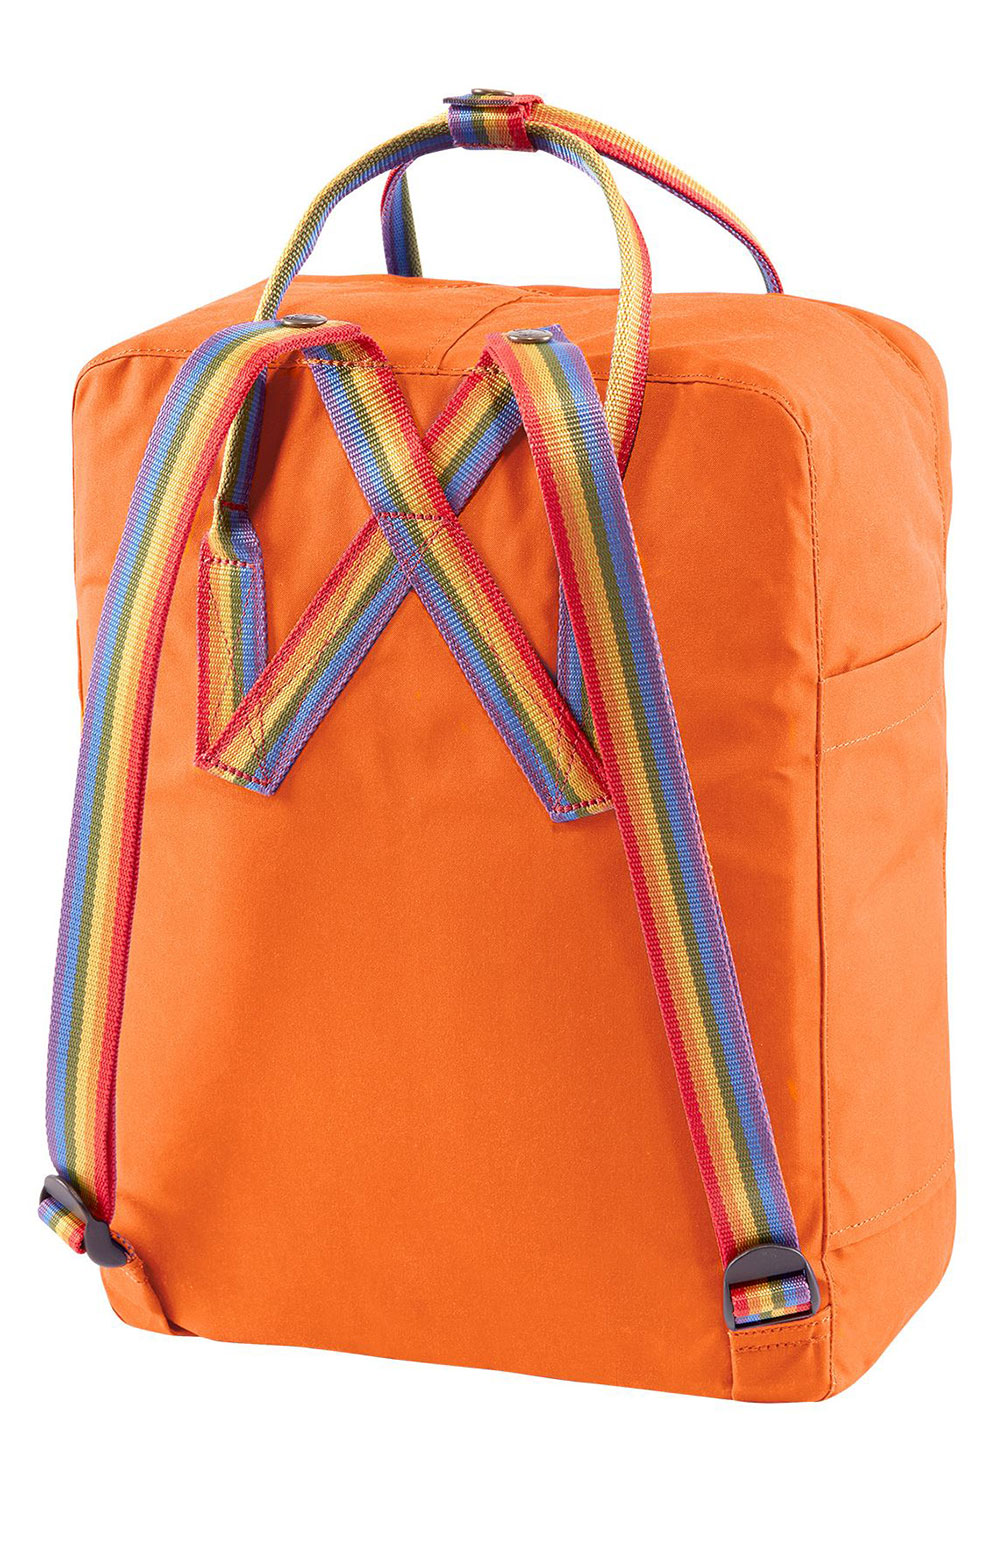 Kanken Rainbow Backpack - Burnt Rainbow/Rainbow Pattern 3